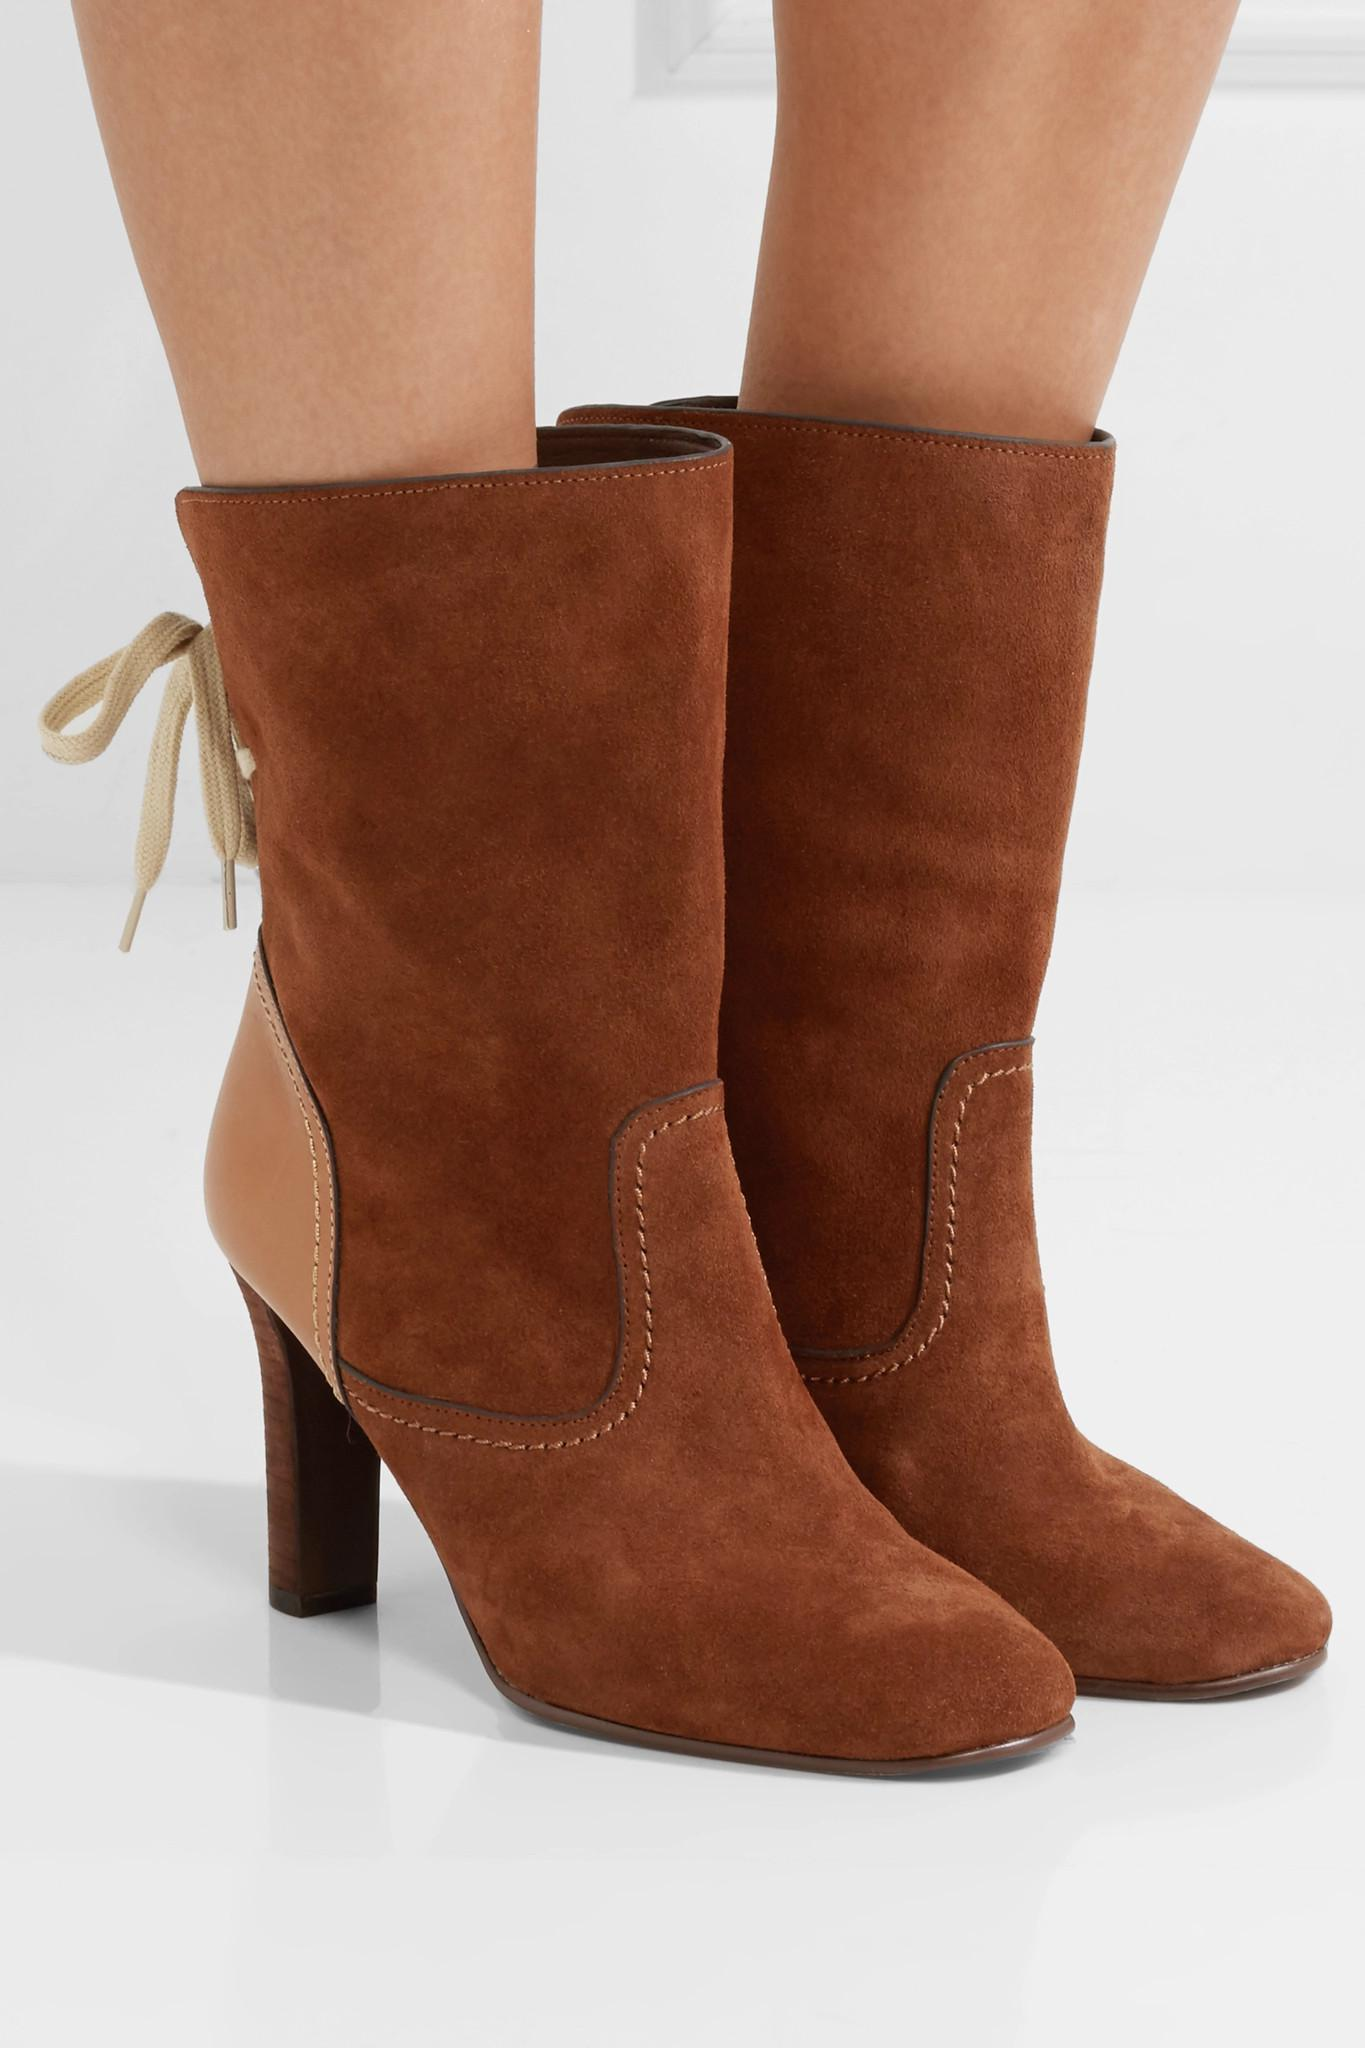 c7ad47d9e90f Lyst - See By Chloé Lara Leather-trimmed Suede Ankle Boots in Brown